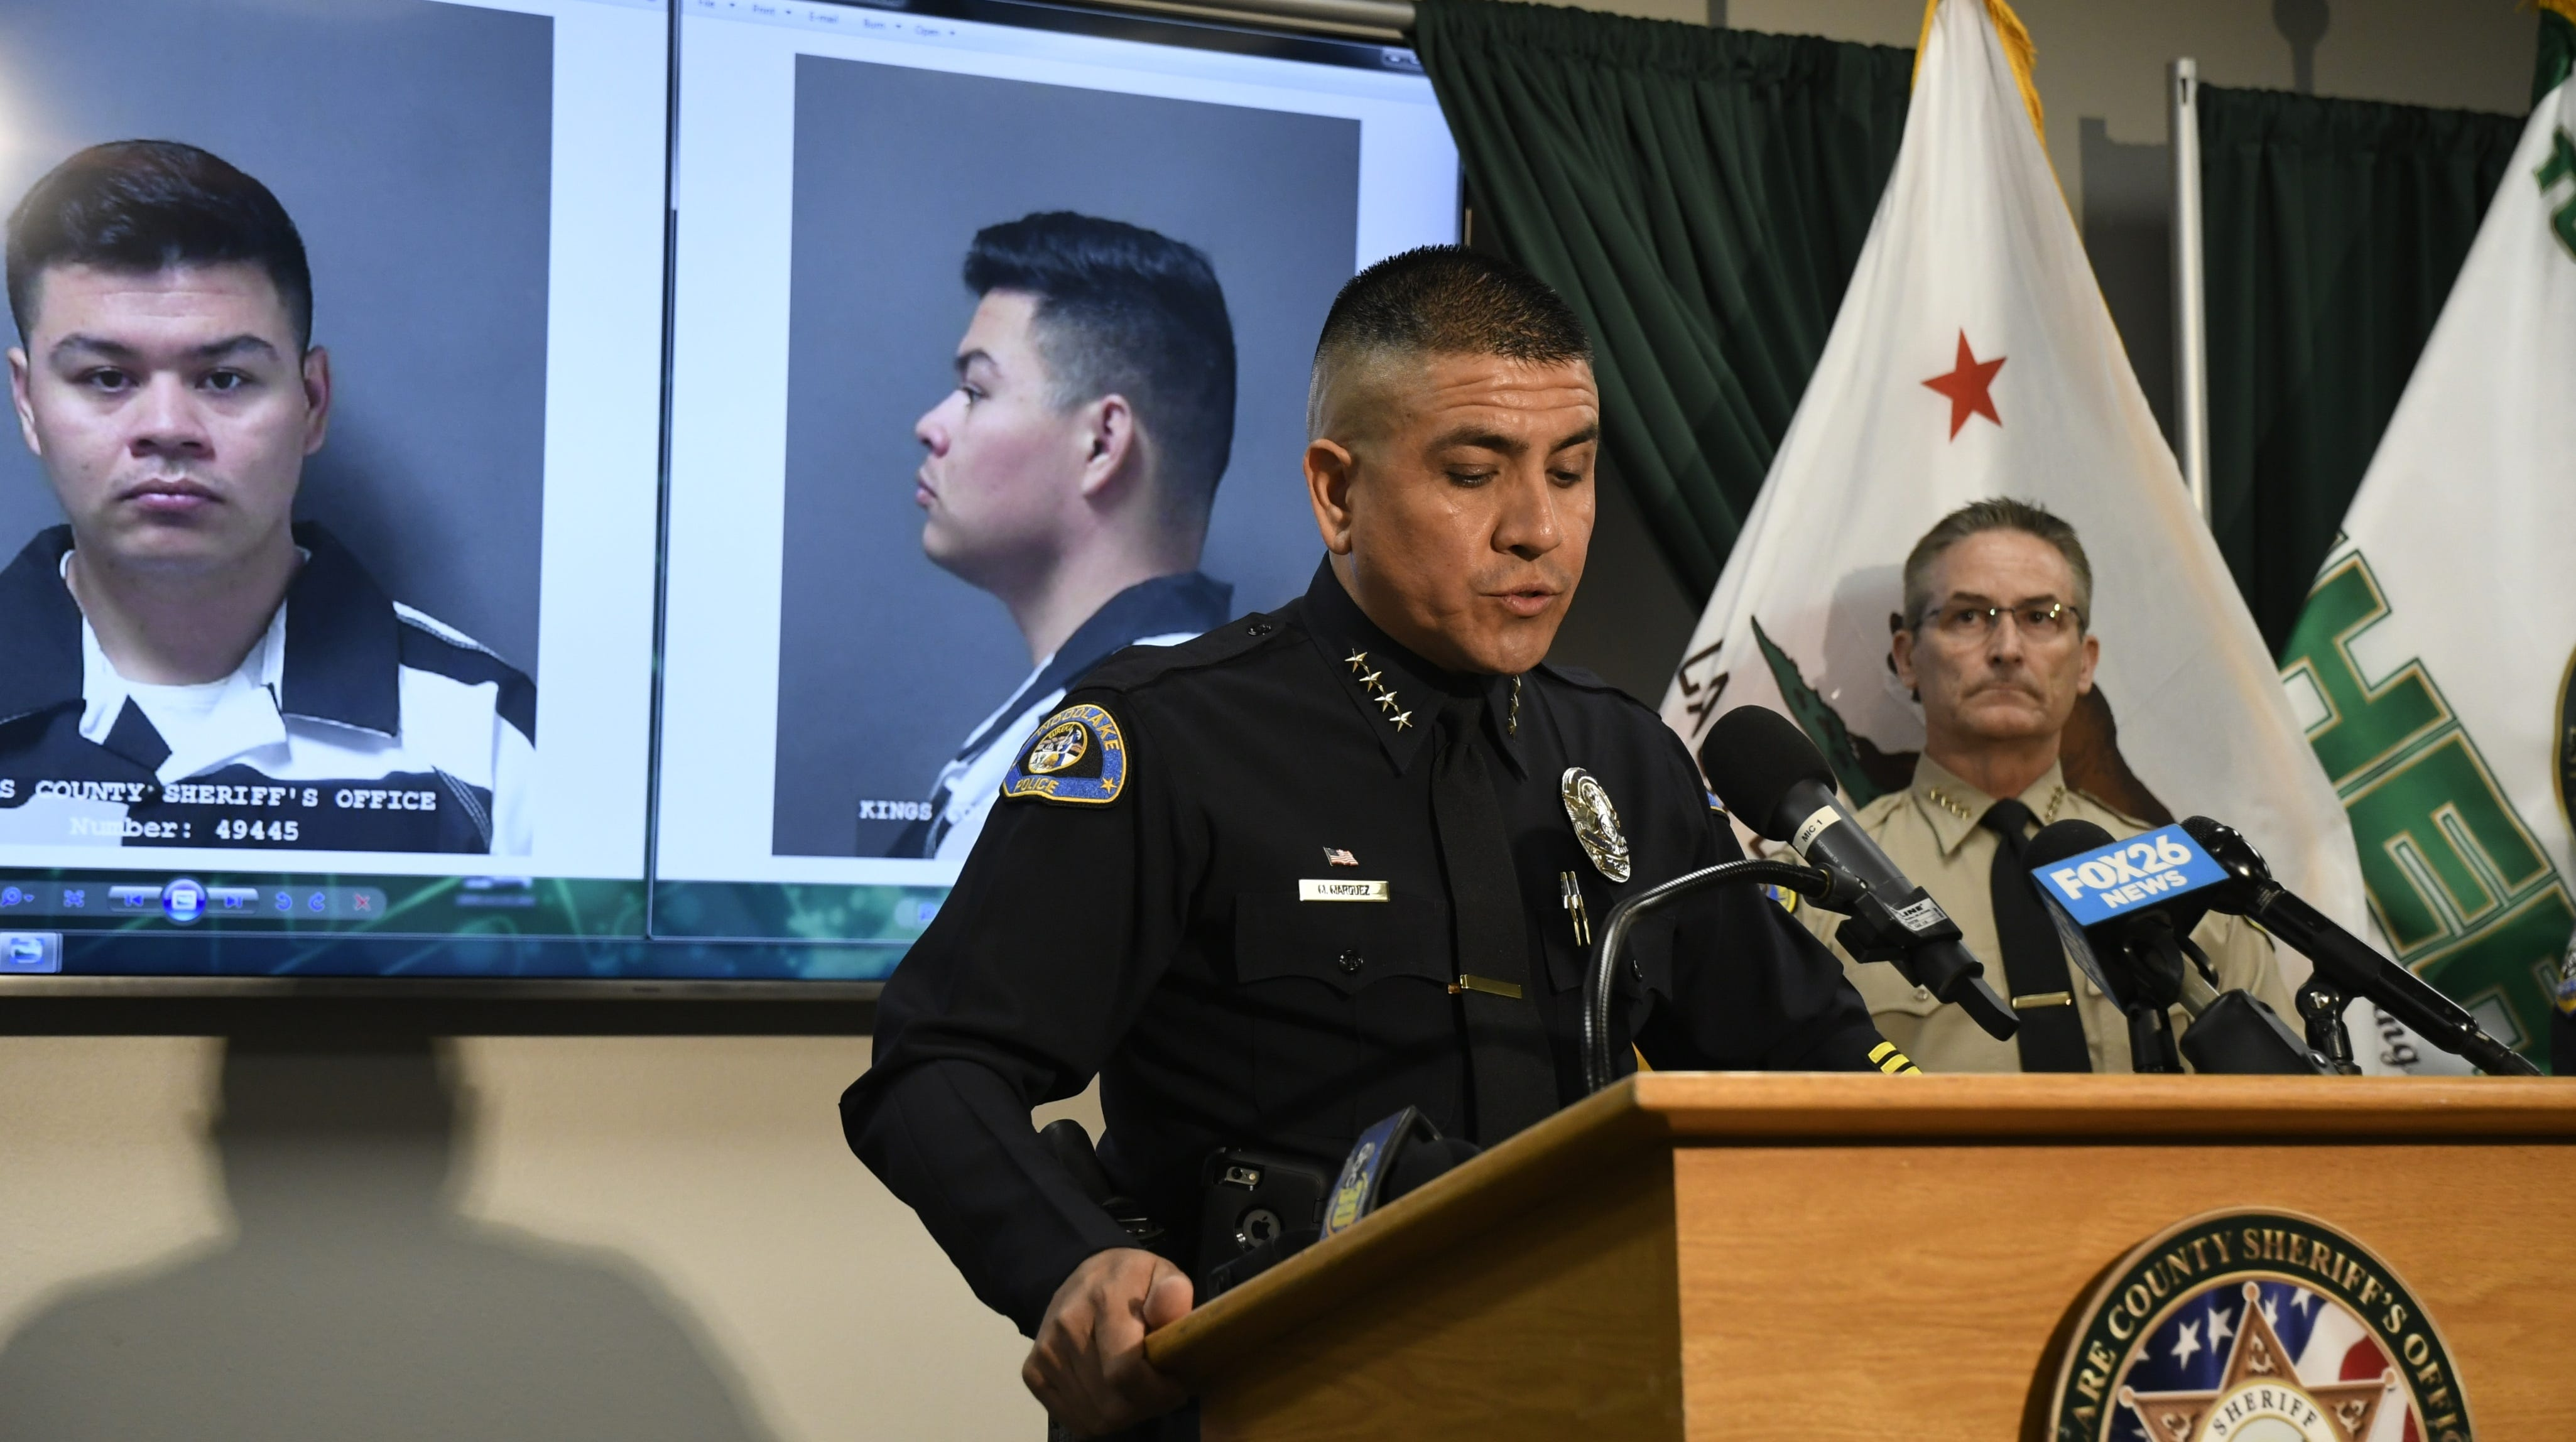 Tulare County Sheriff: Woodlake officer in uniform during sexual assaults